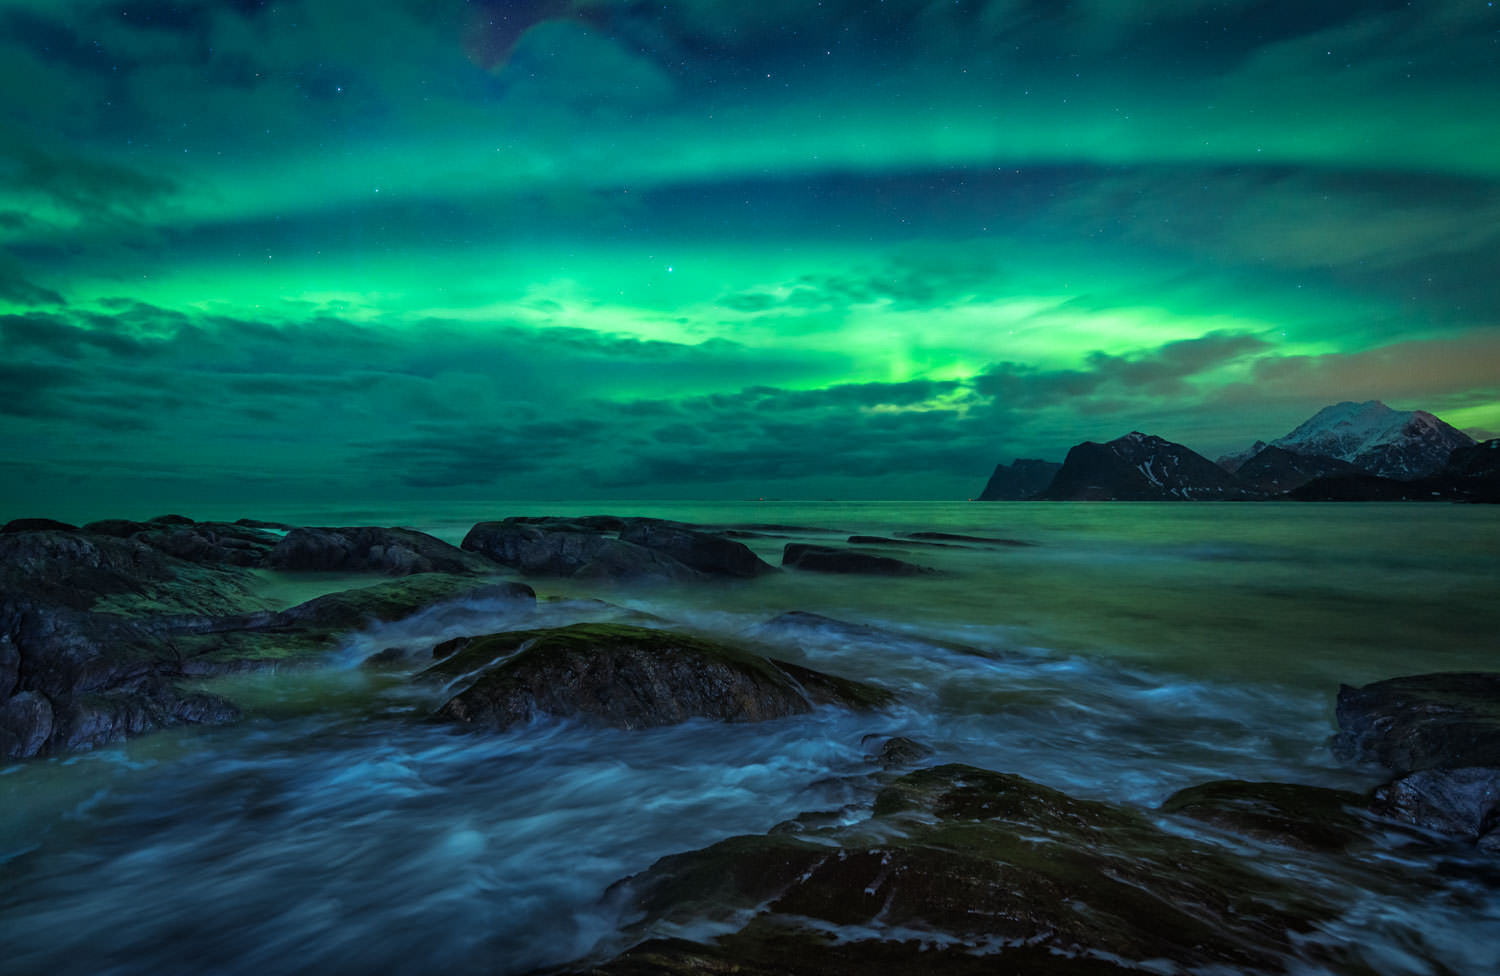 Aurora Borealis (Northern Lights) over the rough sea of Lofoten Islands in Norway - Landscape Photography